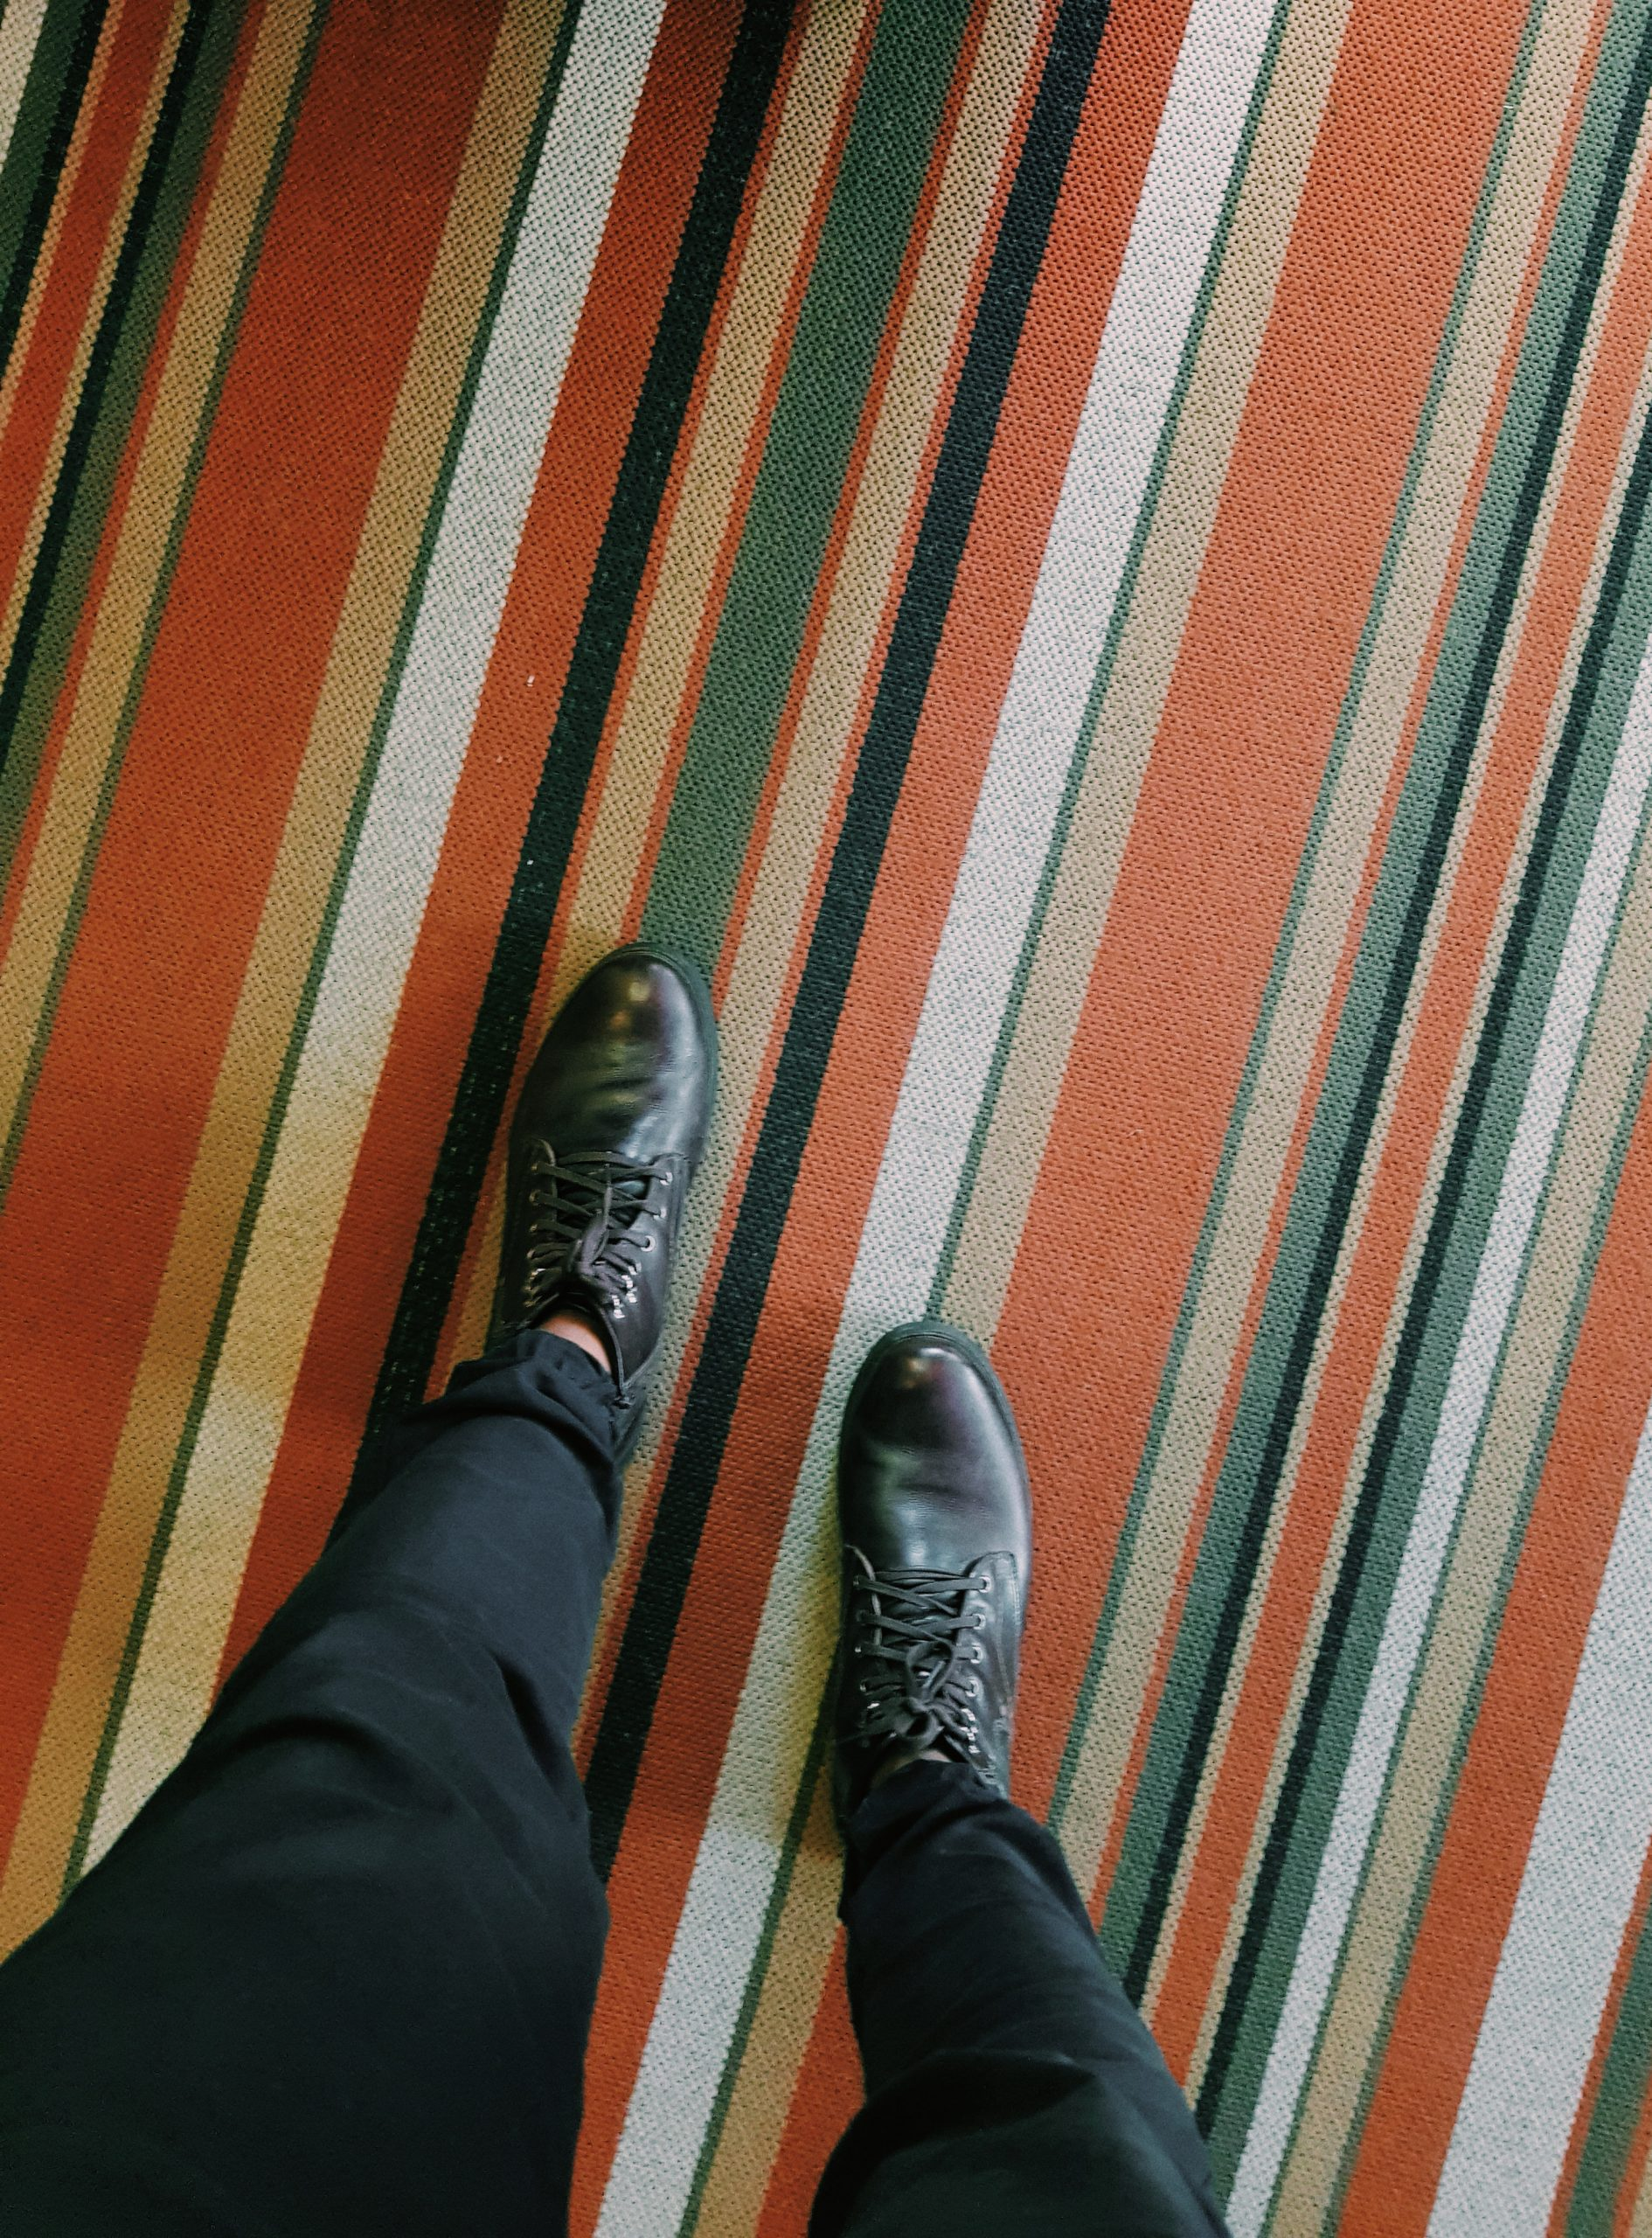 Carpet Cleaning Tips for High Traffic Areas